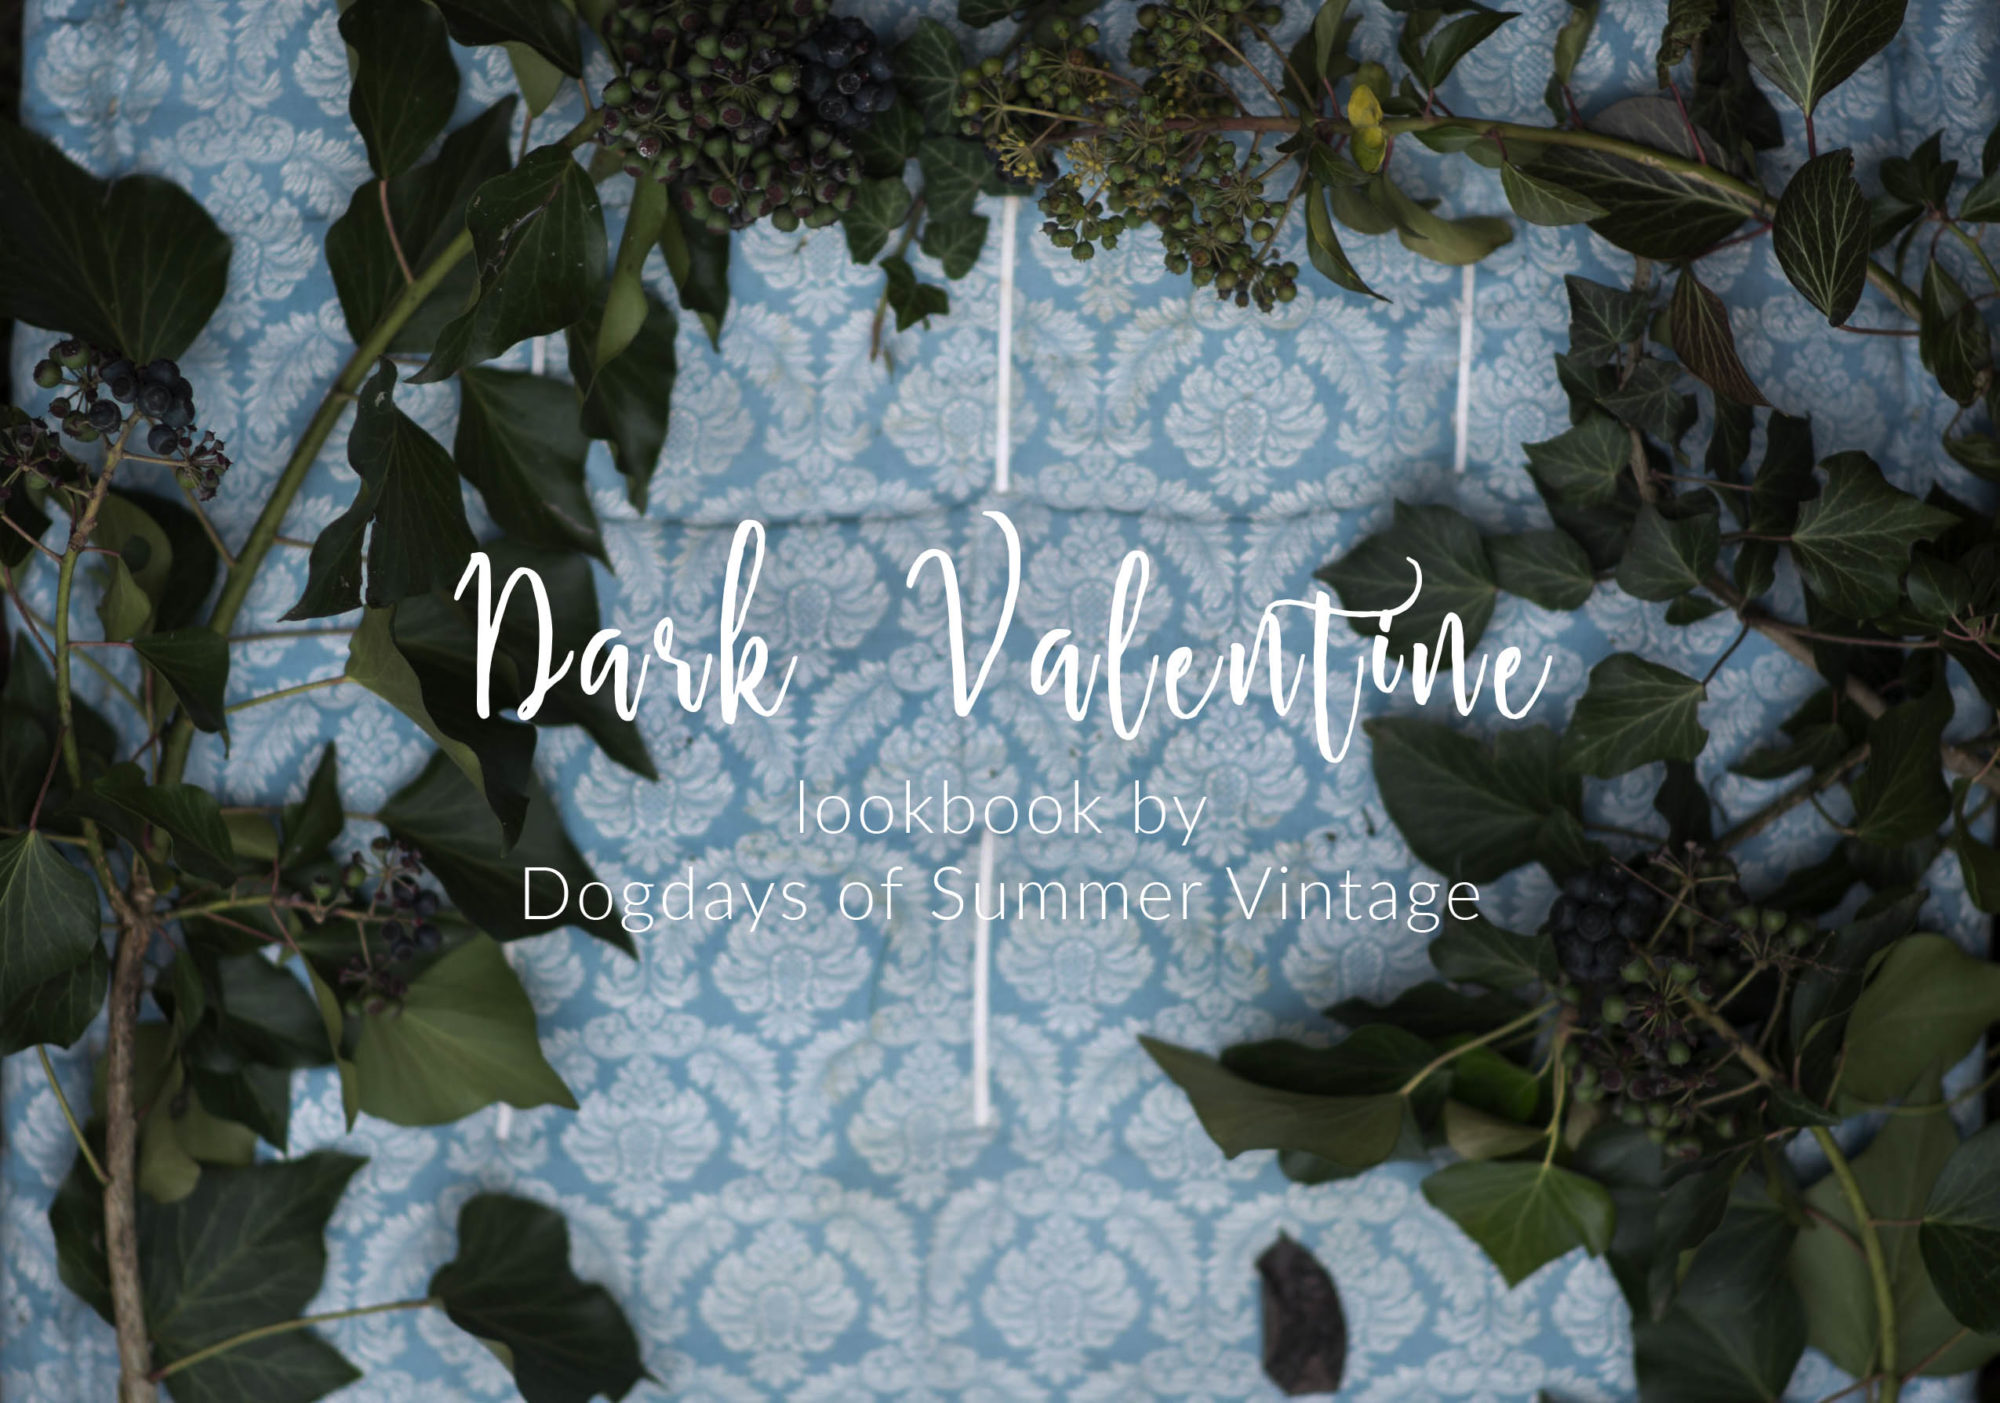 Bilder Vintage Dark Valentine Vintage Lookbook Dogdays Of Summer Blog